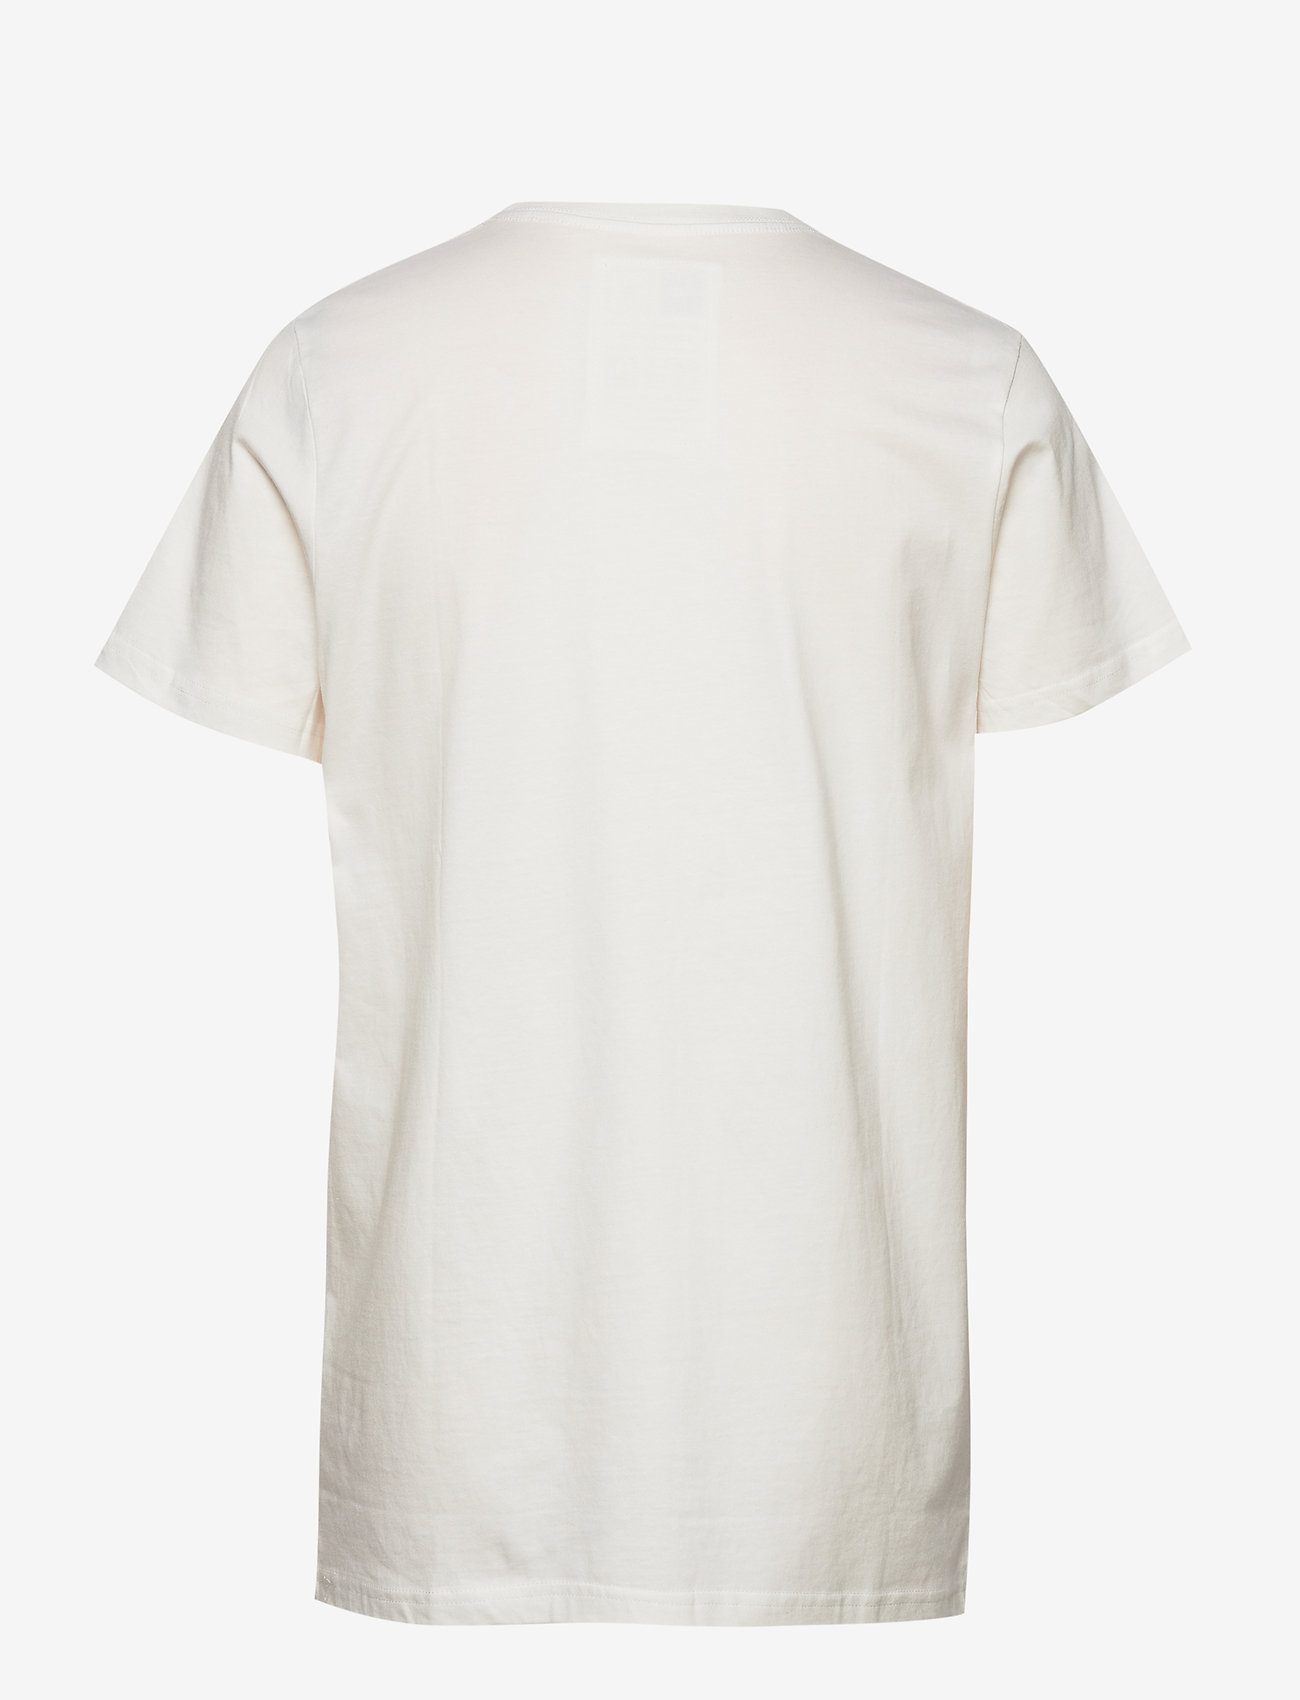 DEDICATED - T-shirt Stockholm Life Is Fantastic - printti t-paidat - off-white